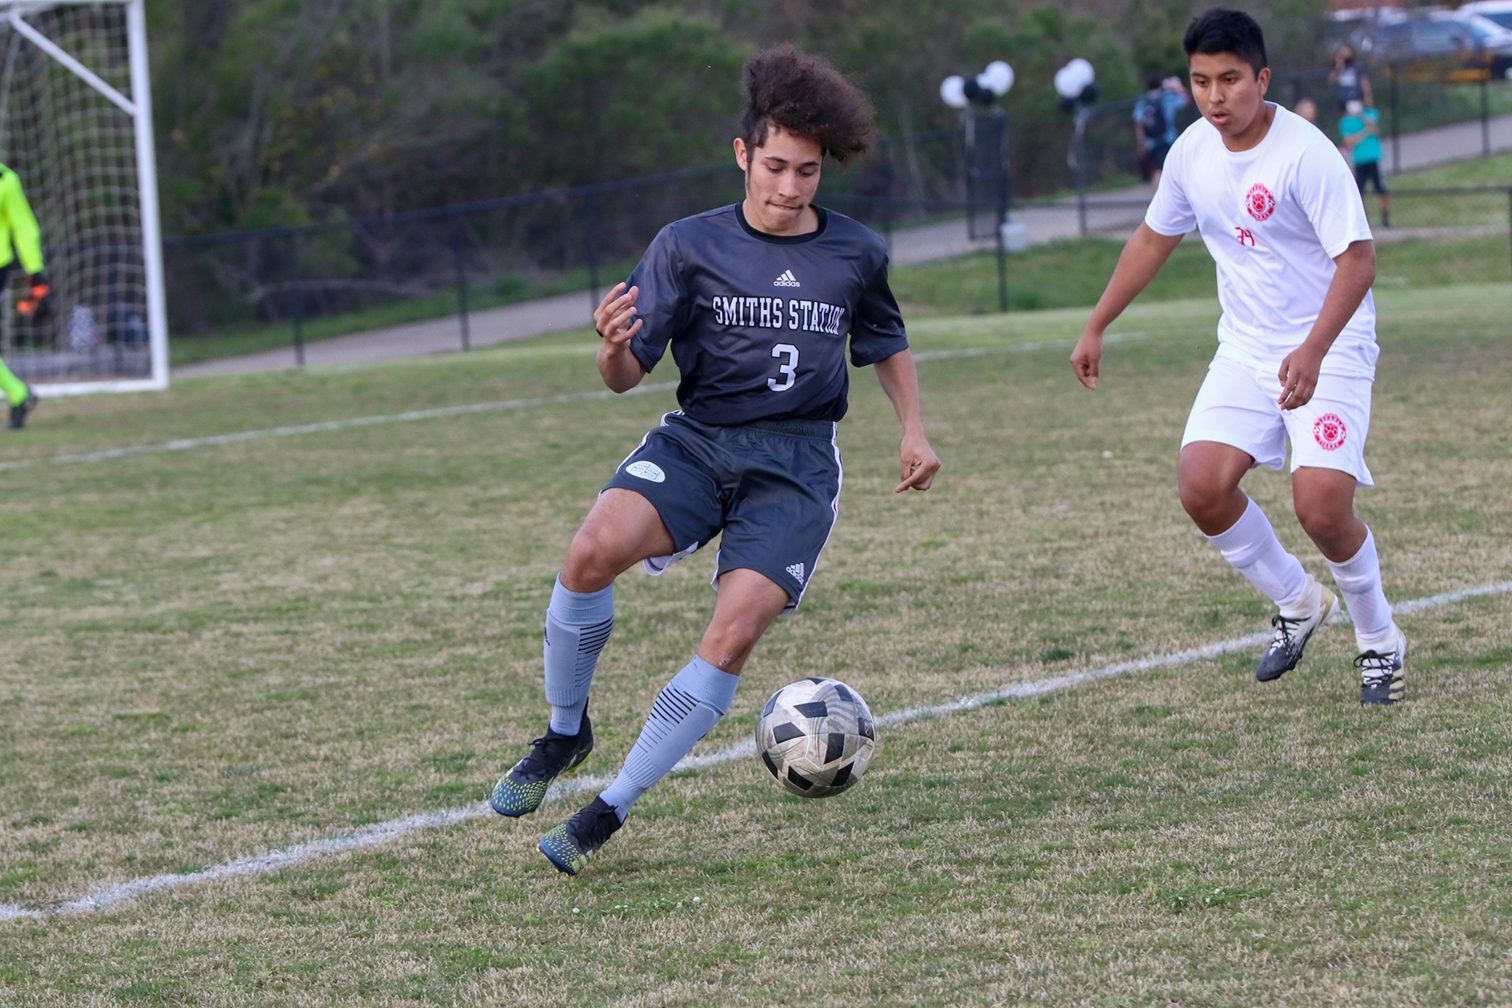 SSHS vs Eufaula 3/22/21